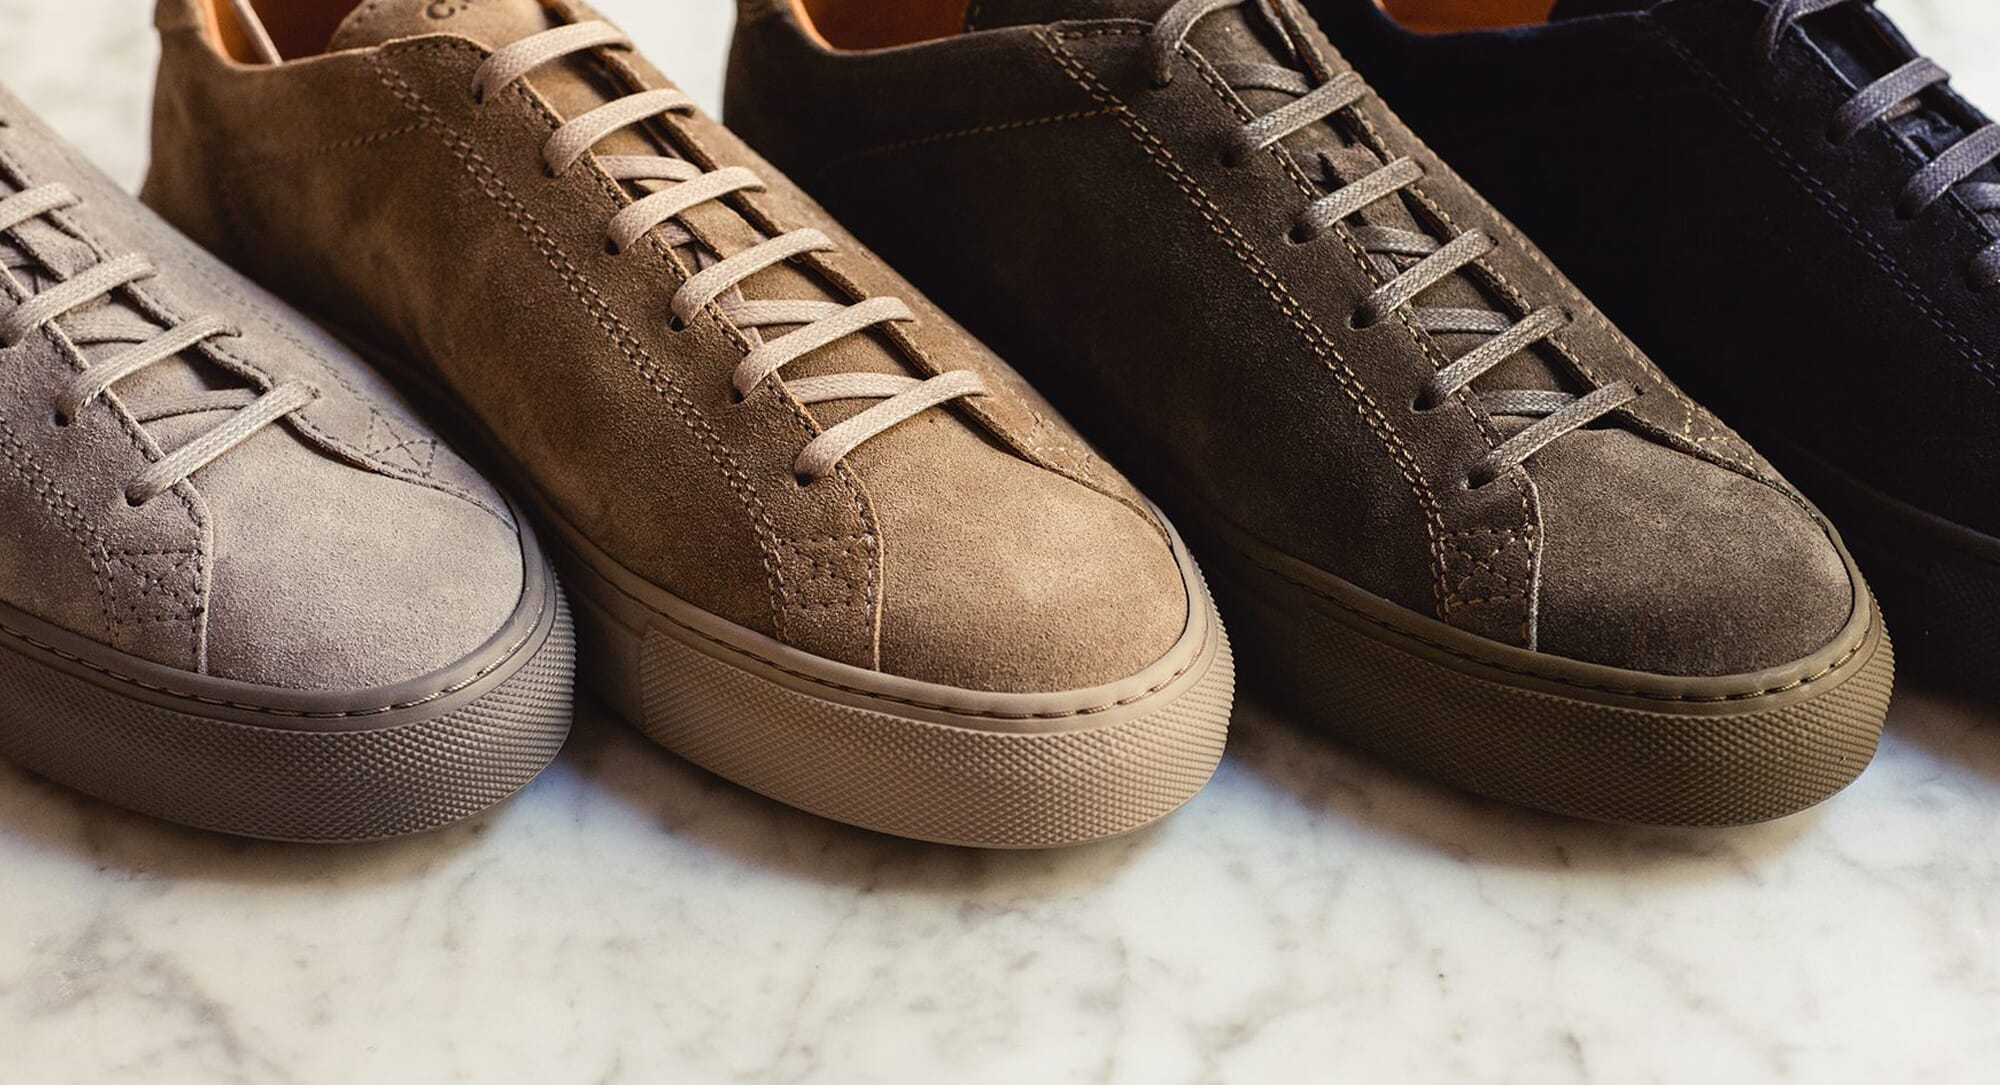 best suede sneakers for year-round wear